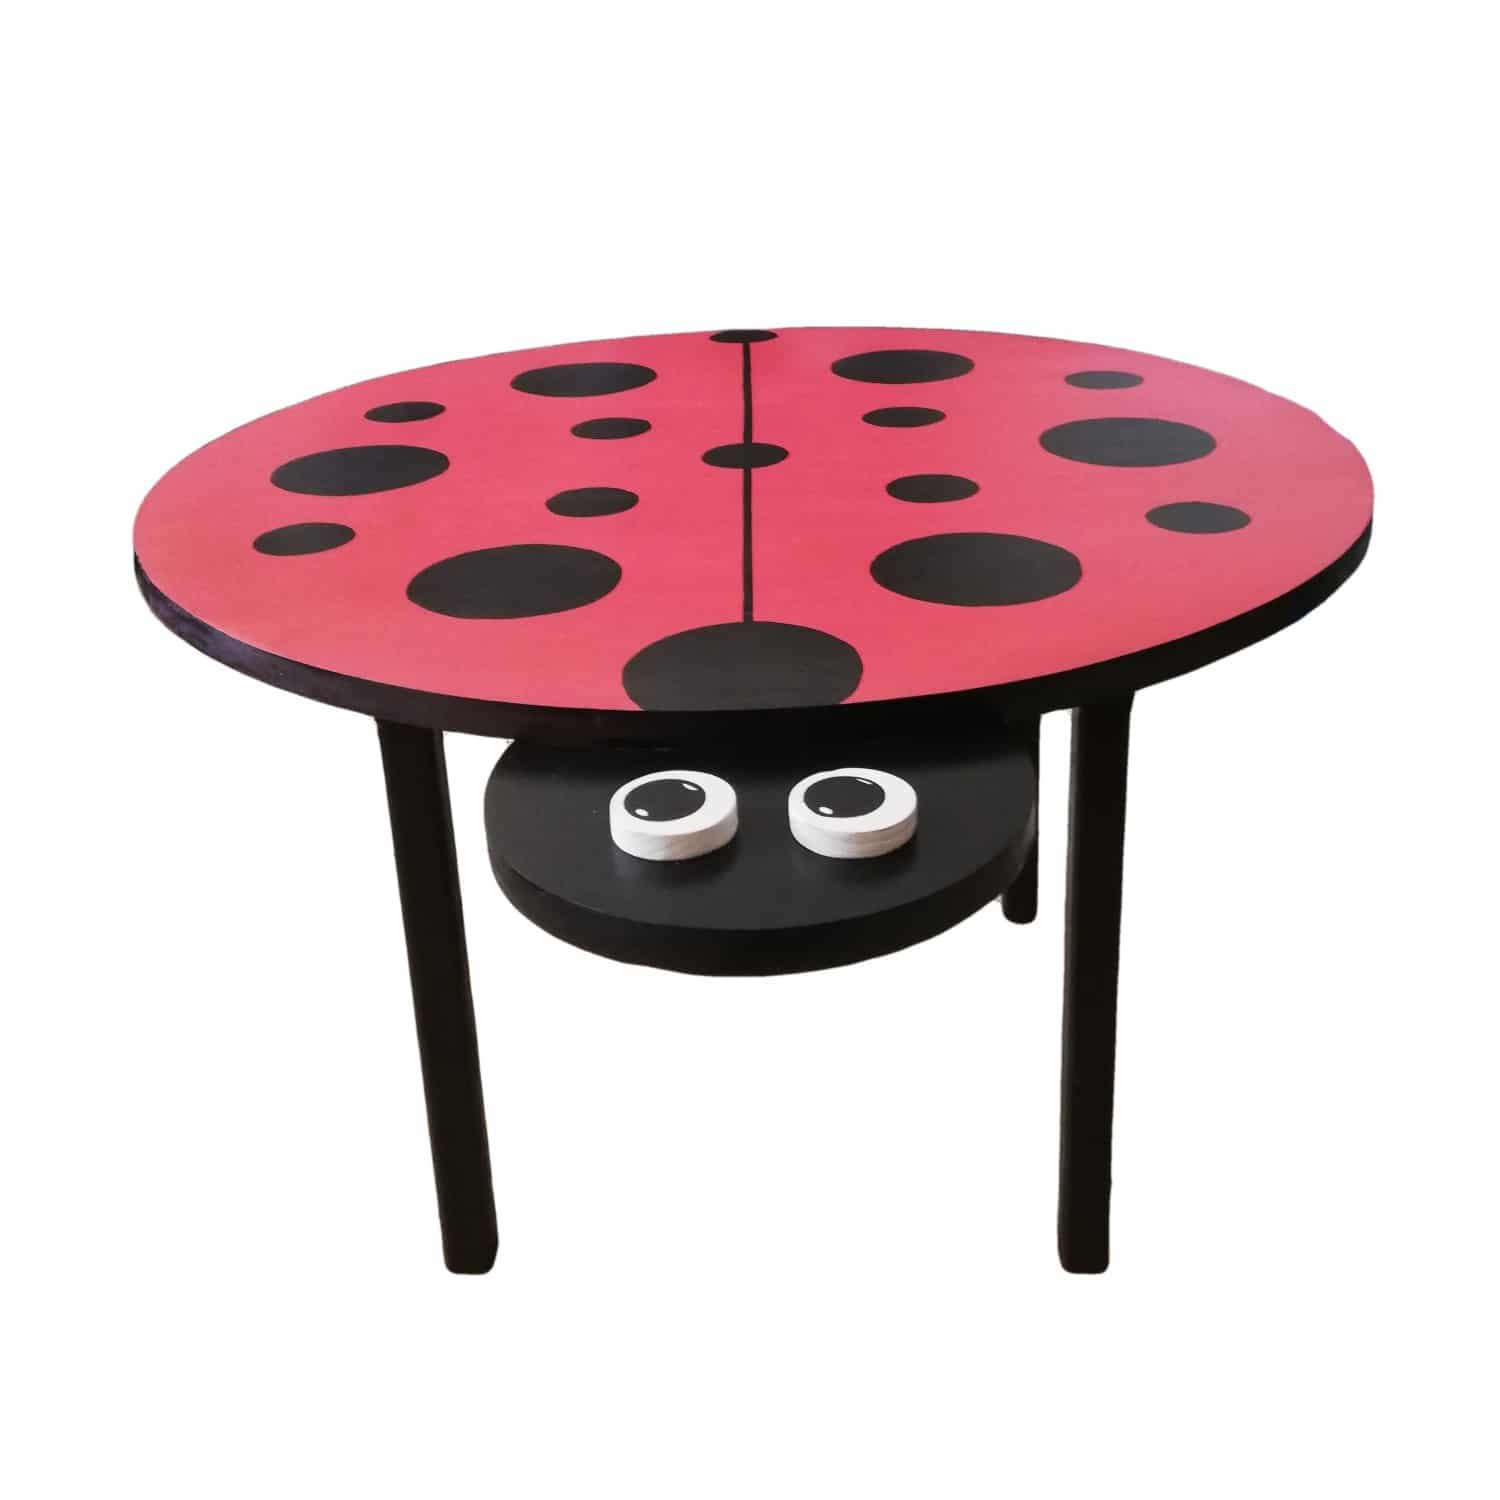 wooden ladybird table - Pips and Moo